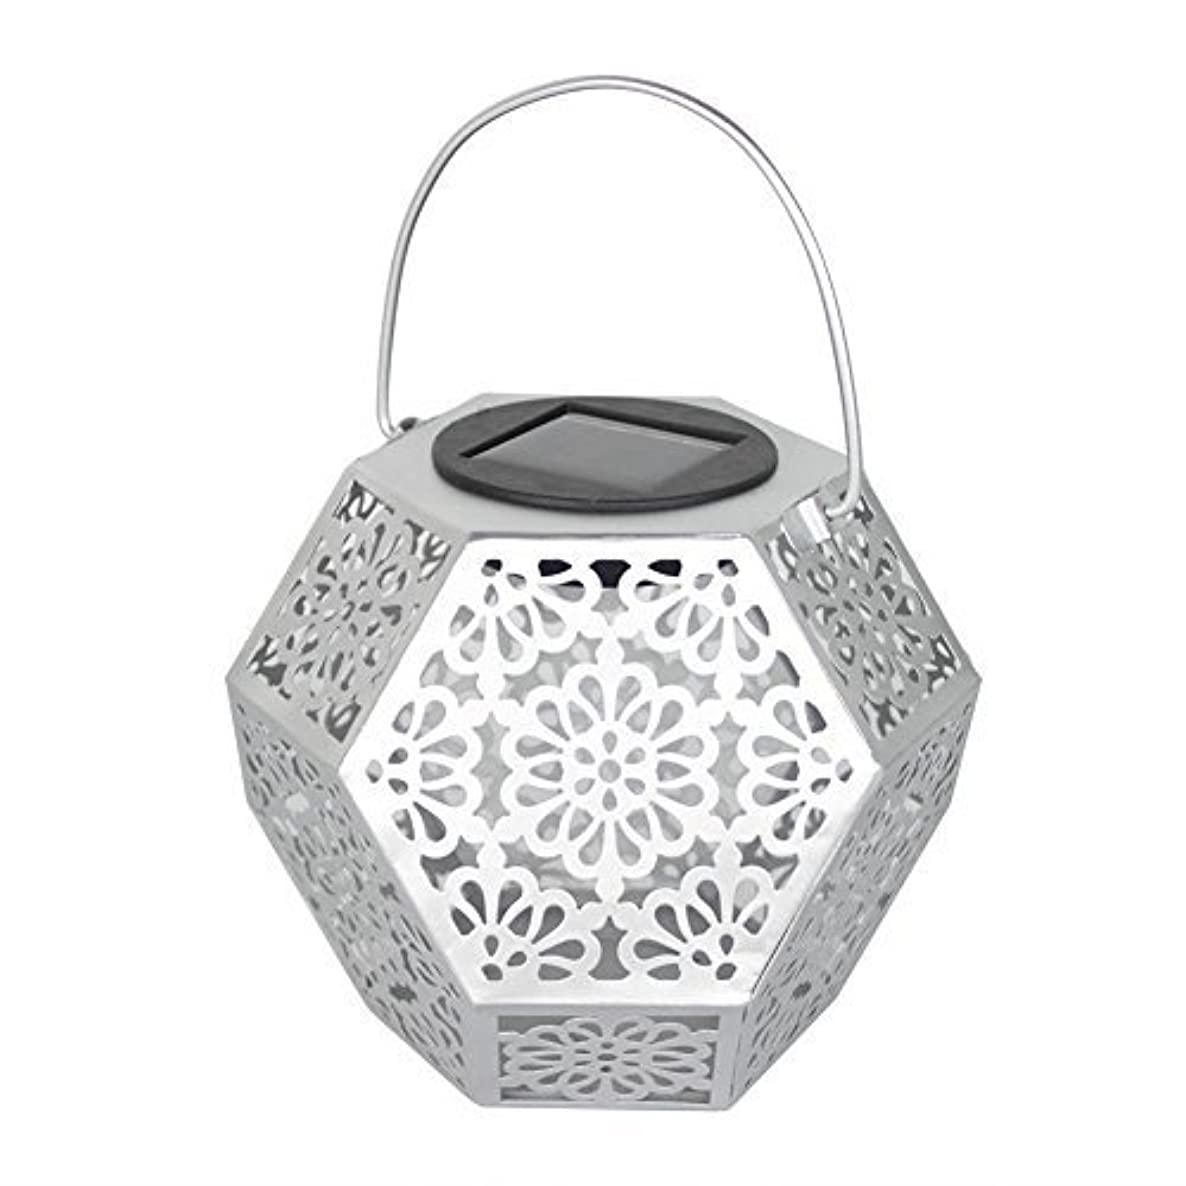 Whitelotous LED Solar Lantern Lights Outdoor Flower Pattern Waterproof Garden Lights Hanging Decoration and Indoor Ambiance Decoration (Silver)